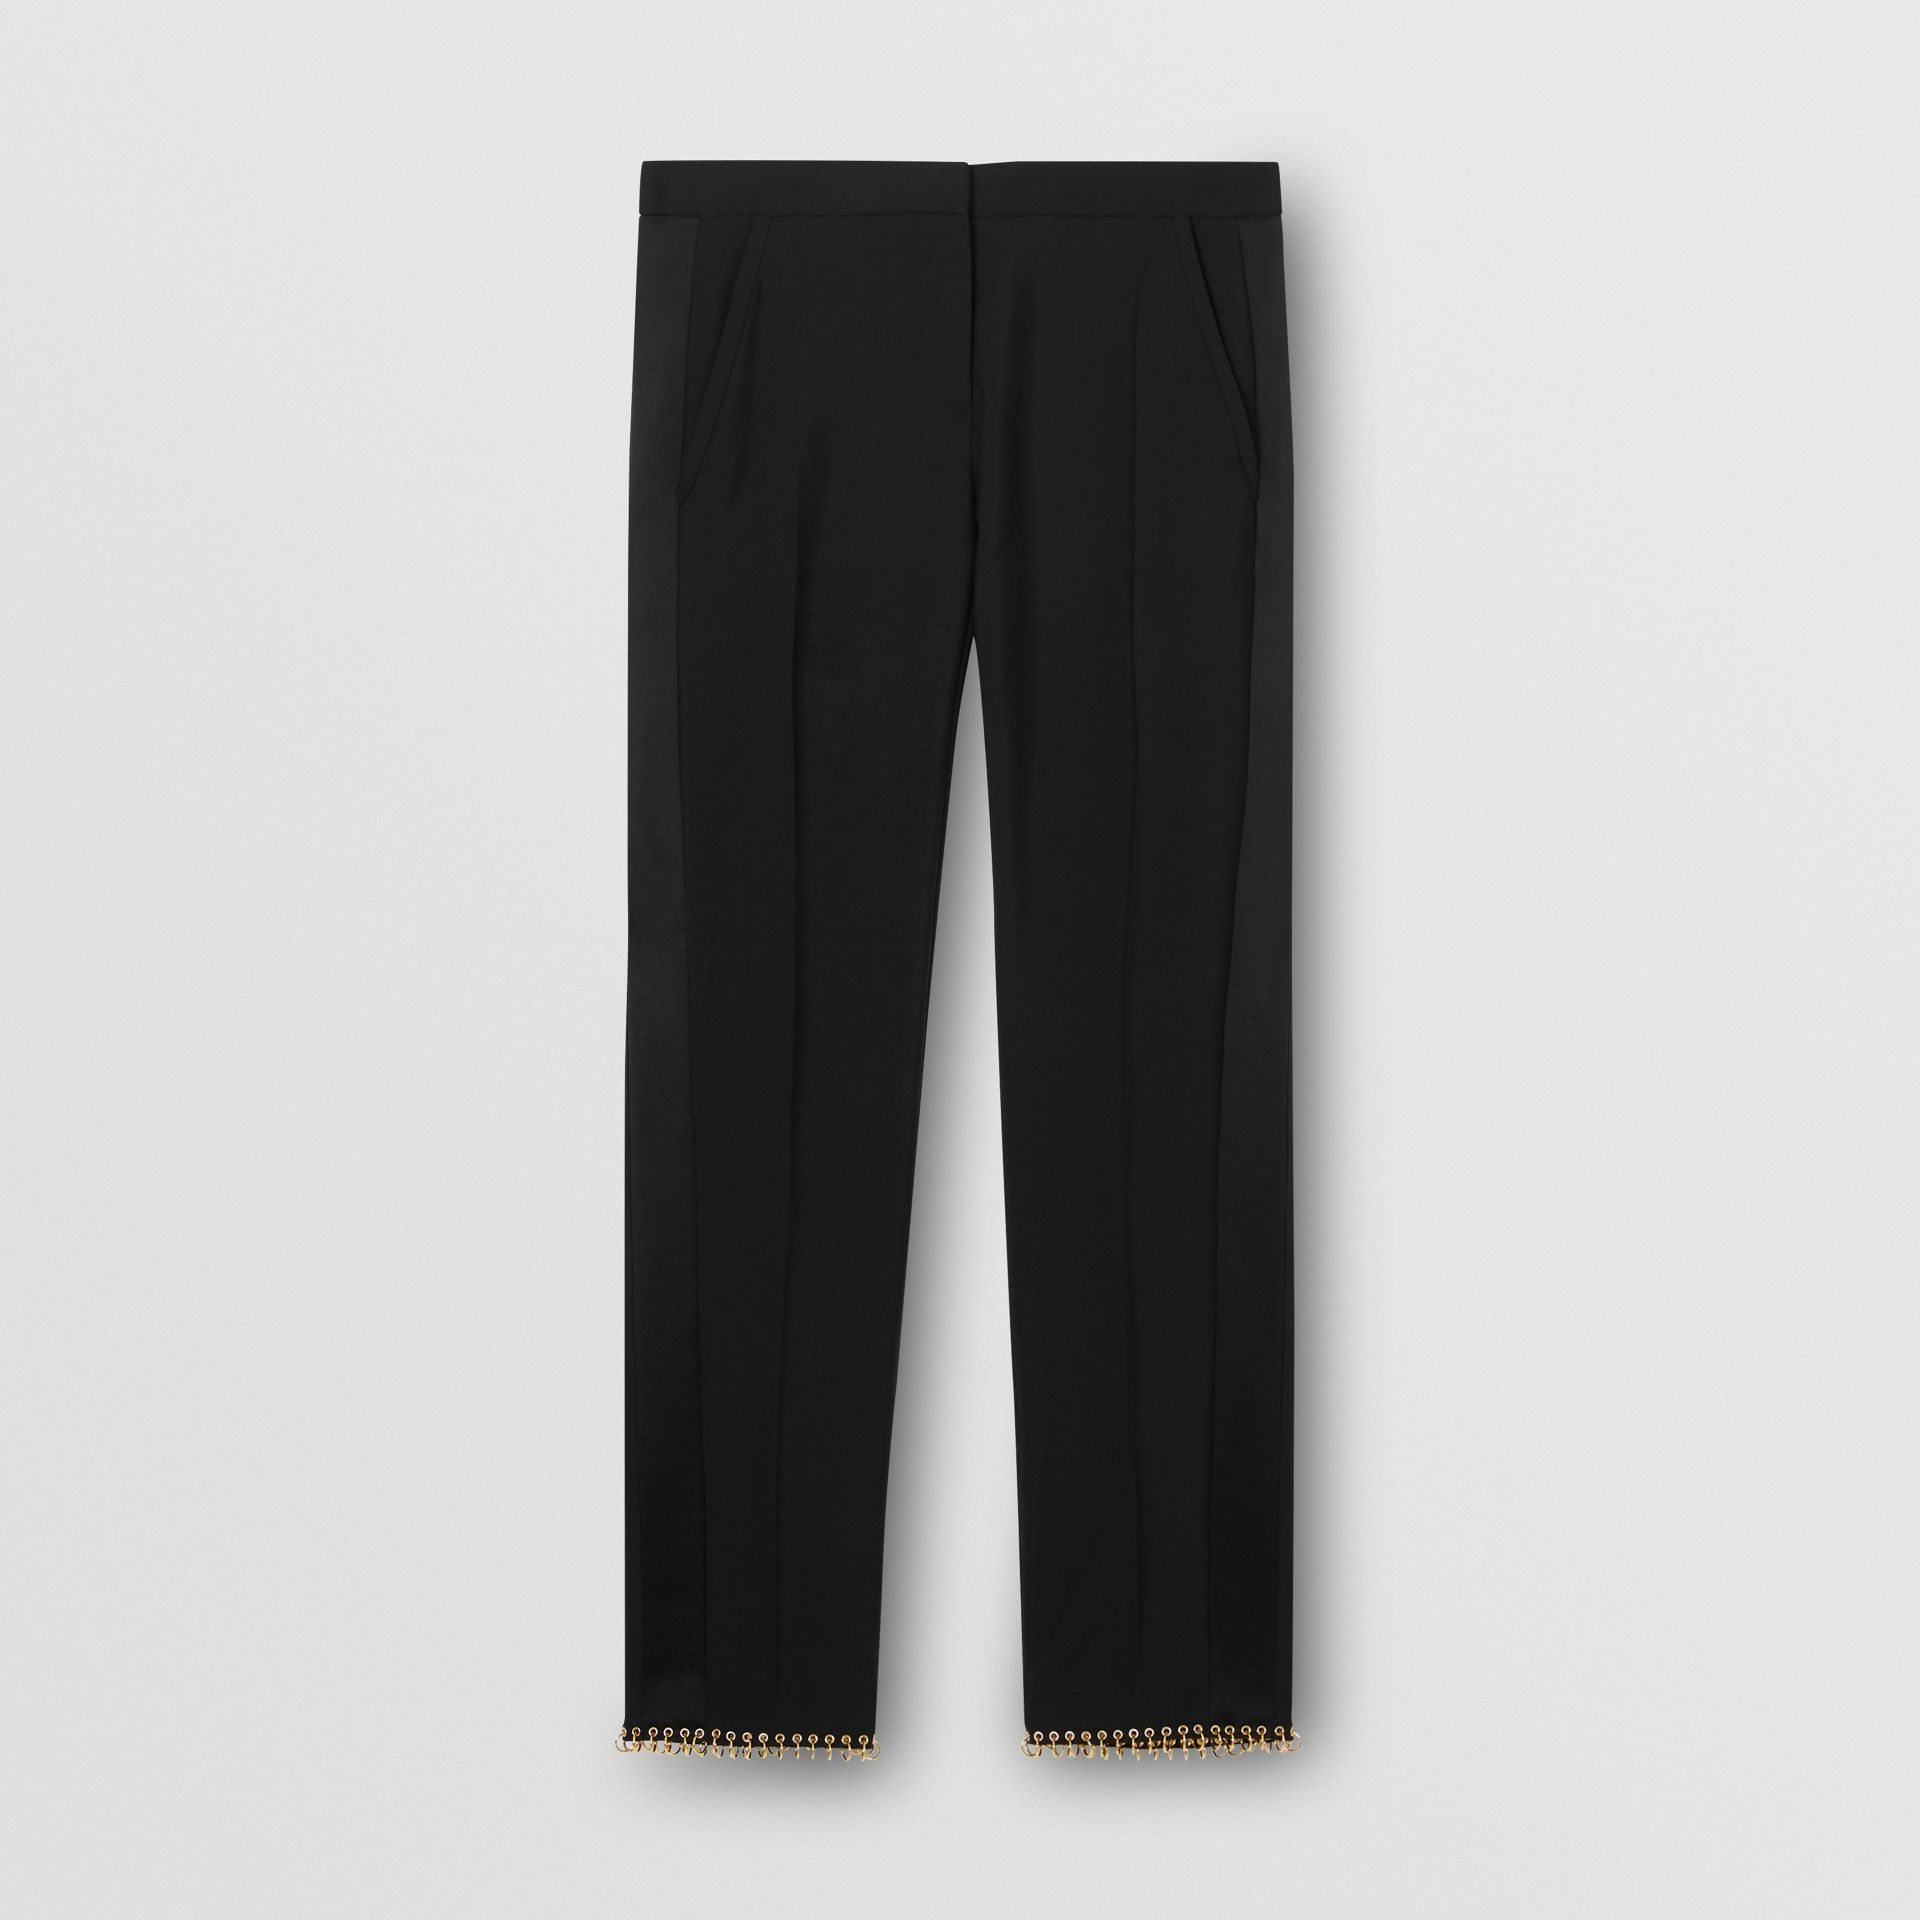 Ring-pierced Wool Tailored Trousers in Black - Women | Burberry - gallery image 3